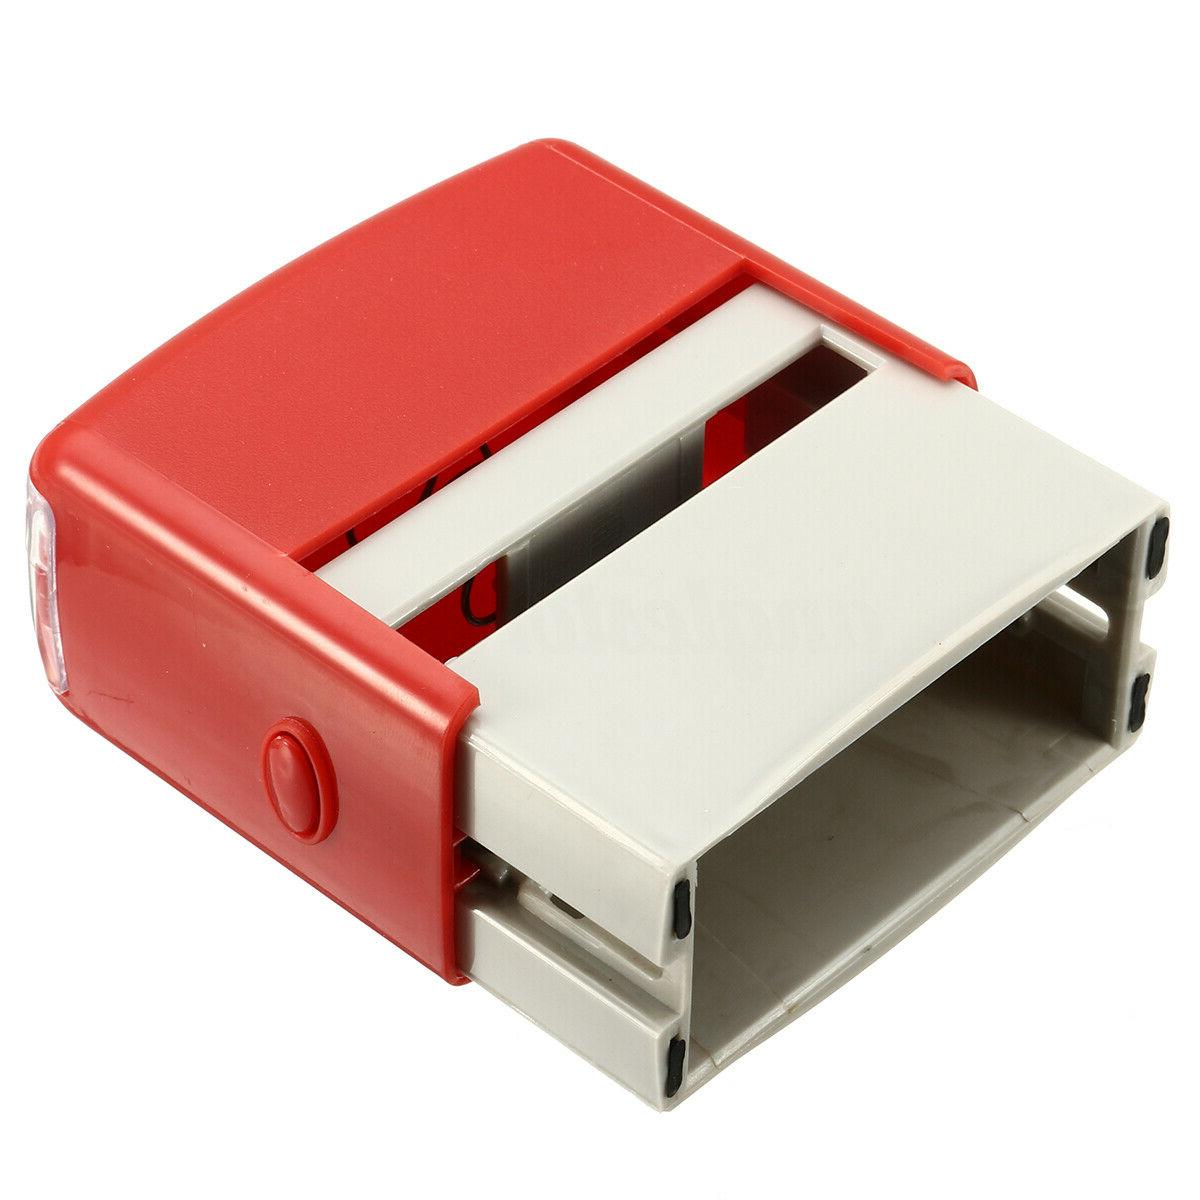 Personalised Self Rubber Stamp Kit Business Address Tool